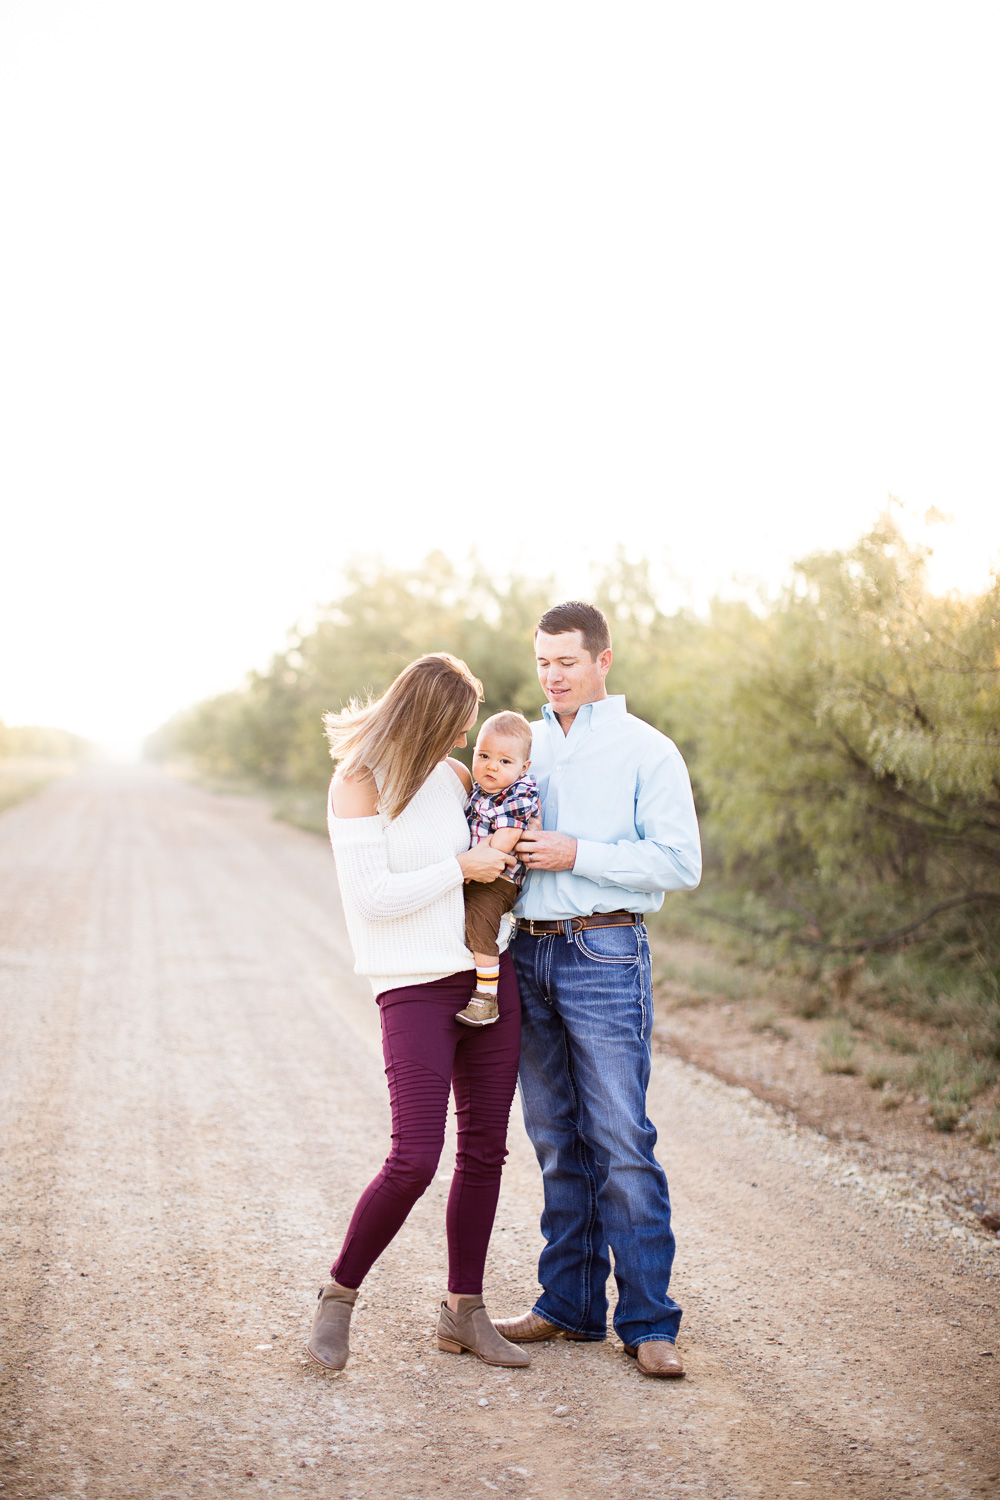 Abilene-Family-Photographer-JJMT-3.jpg